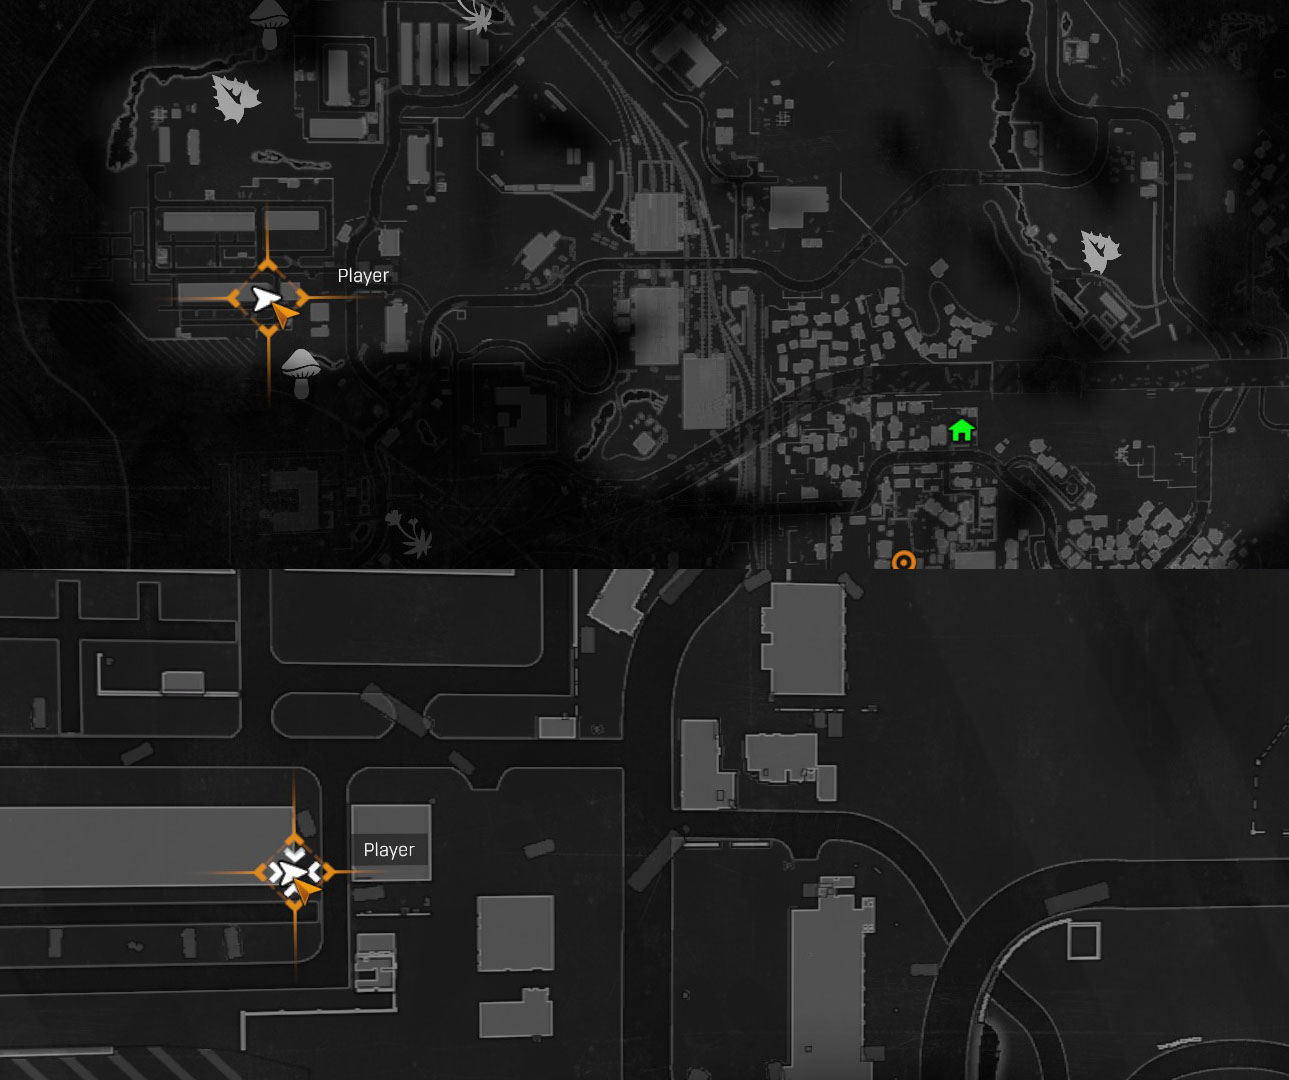 Dying Light Building 4 Flag Location